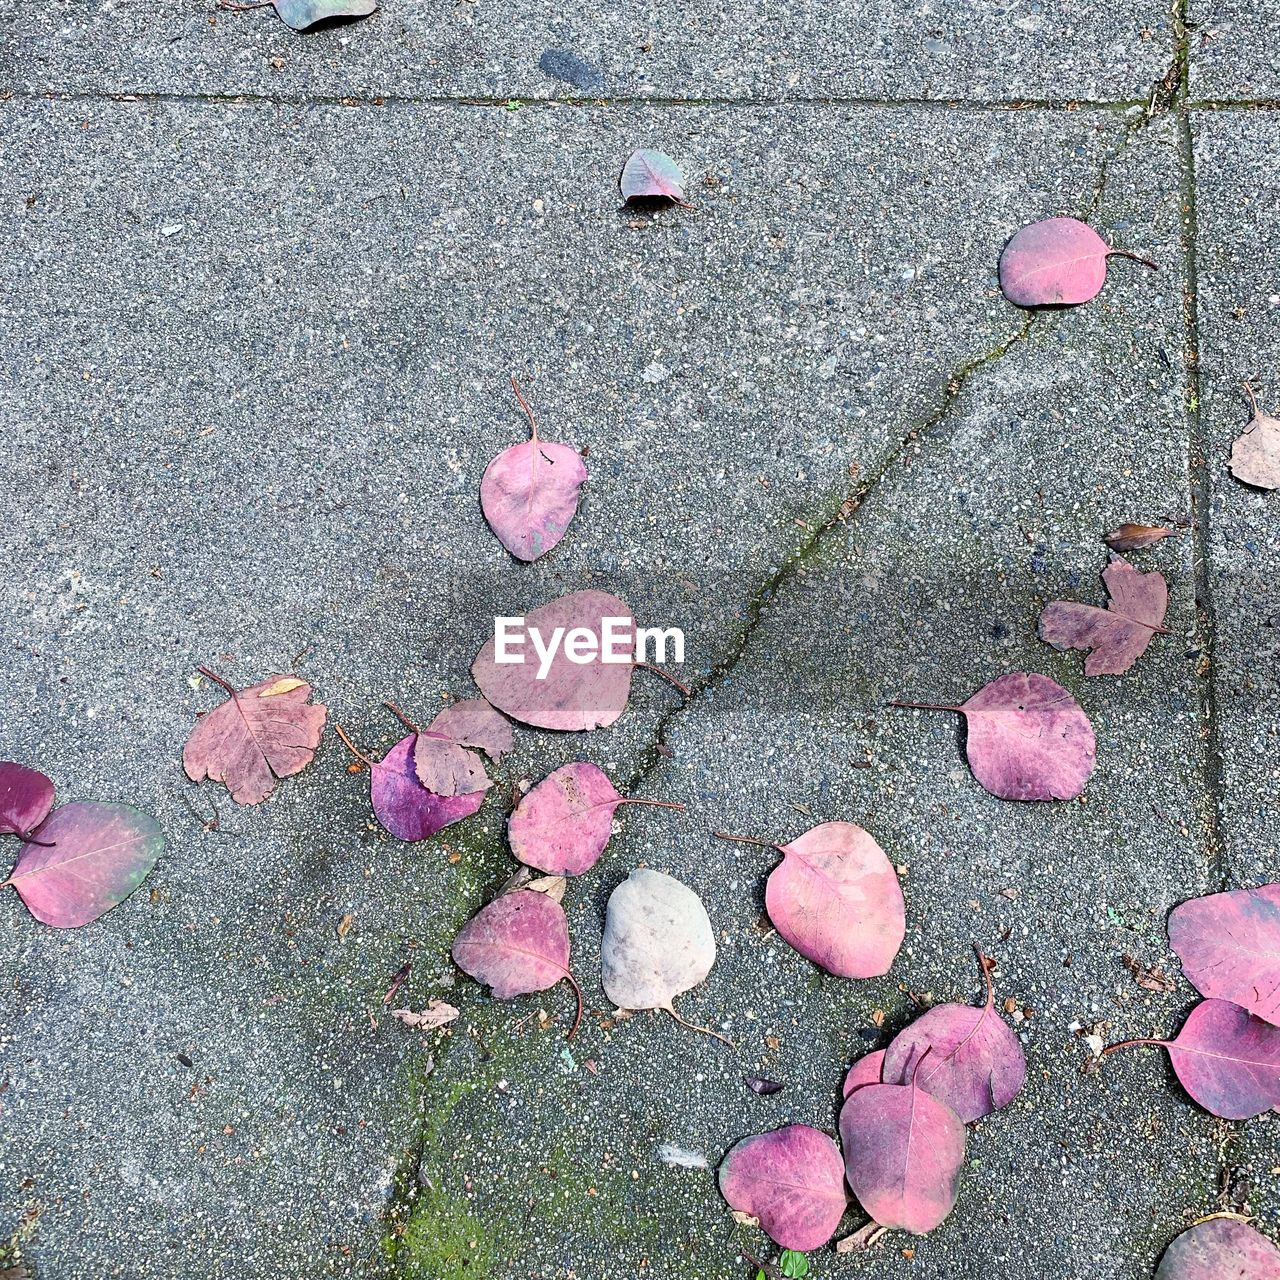 HIGH ANGLE VIEW OF PINK ROSE ON STREET